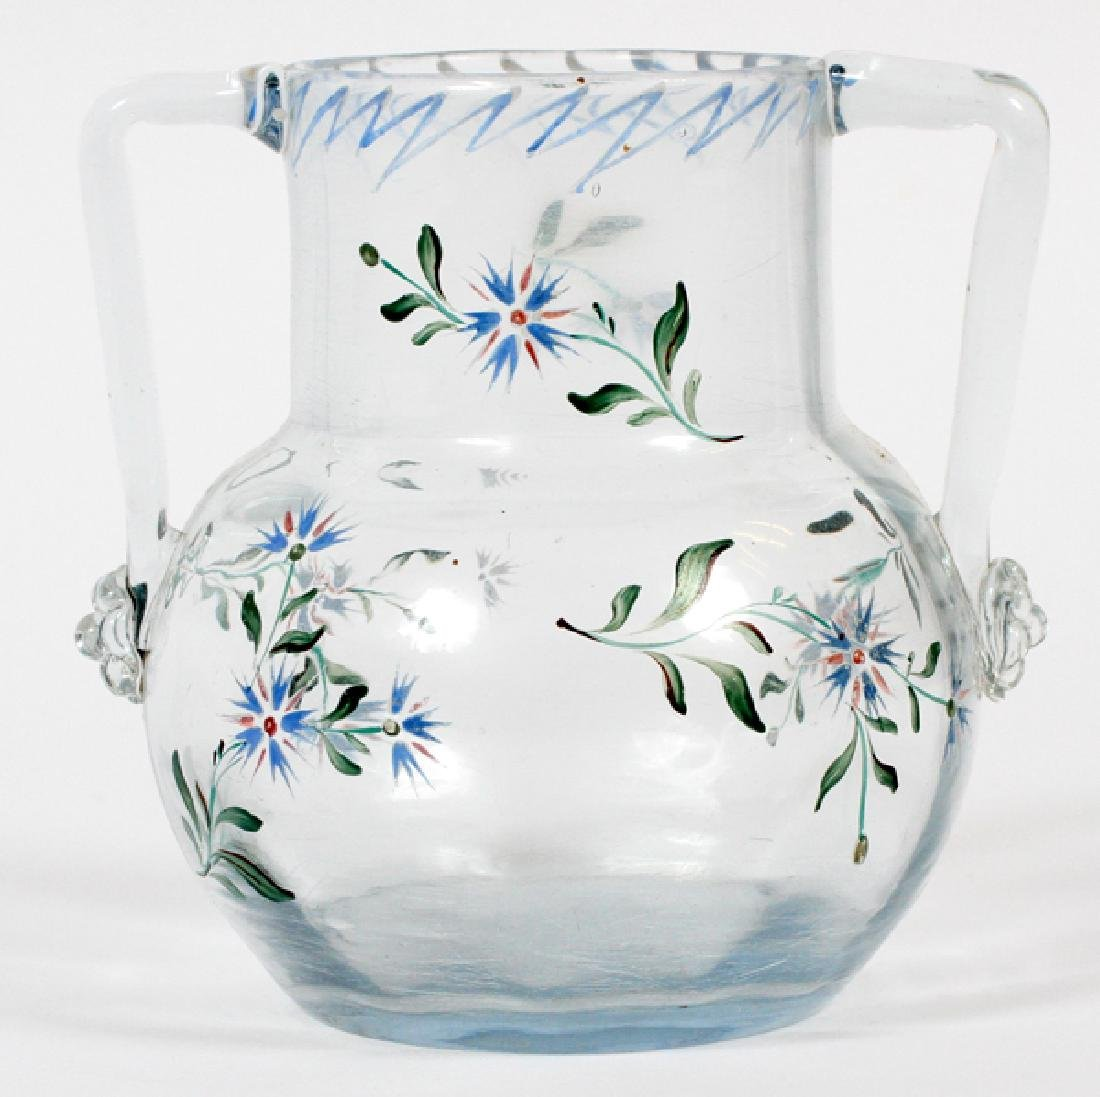 EMILE GALLE ENAMELED BLUE GLASS VASE C.1890